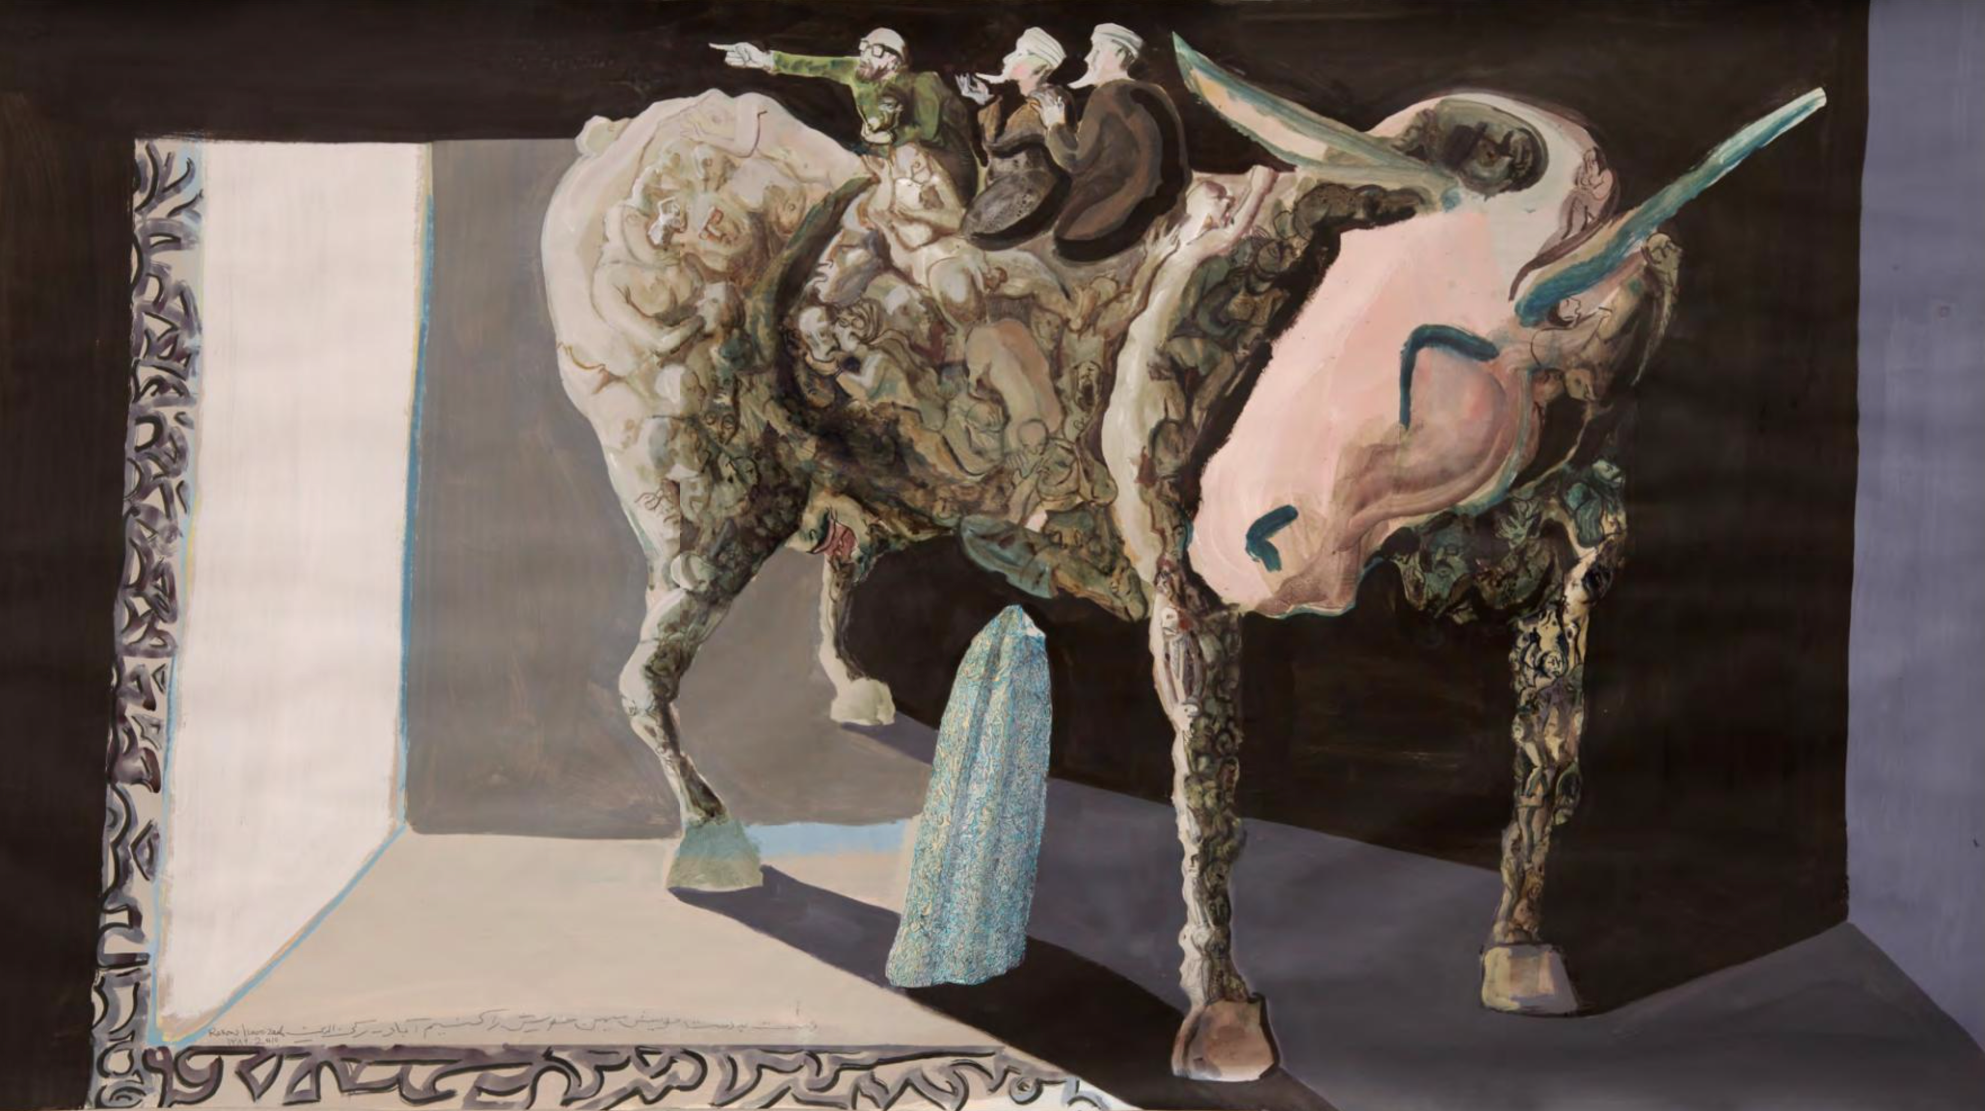 Rokni Haerizadeh, We Will Join Hands in Love and Rebuild our Country, watercolor and gesso on paper, 120 x 216 cm, 2011